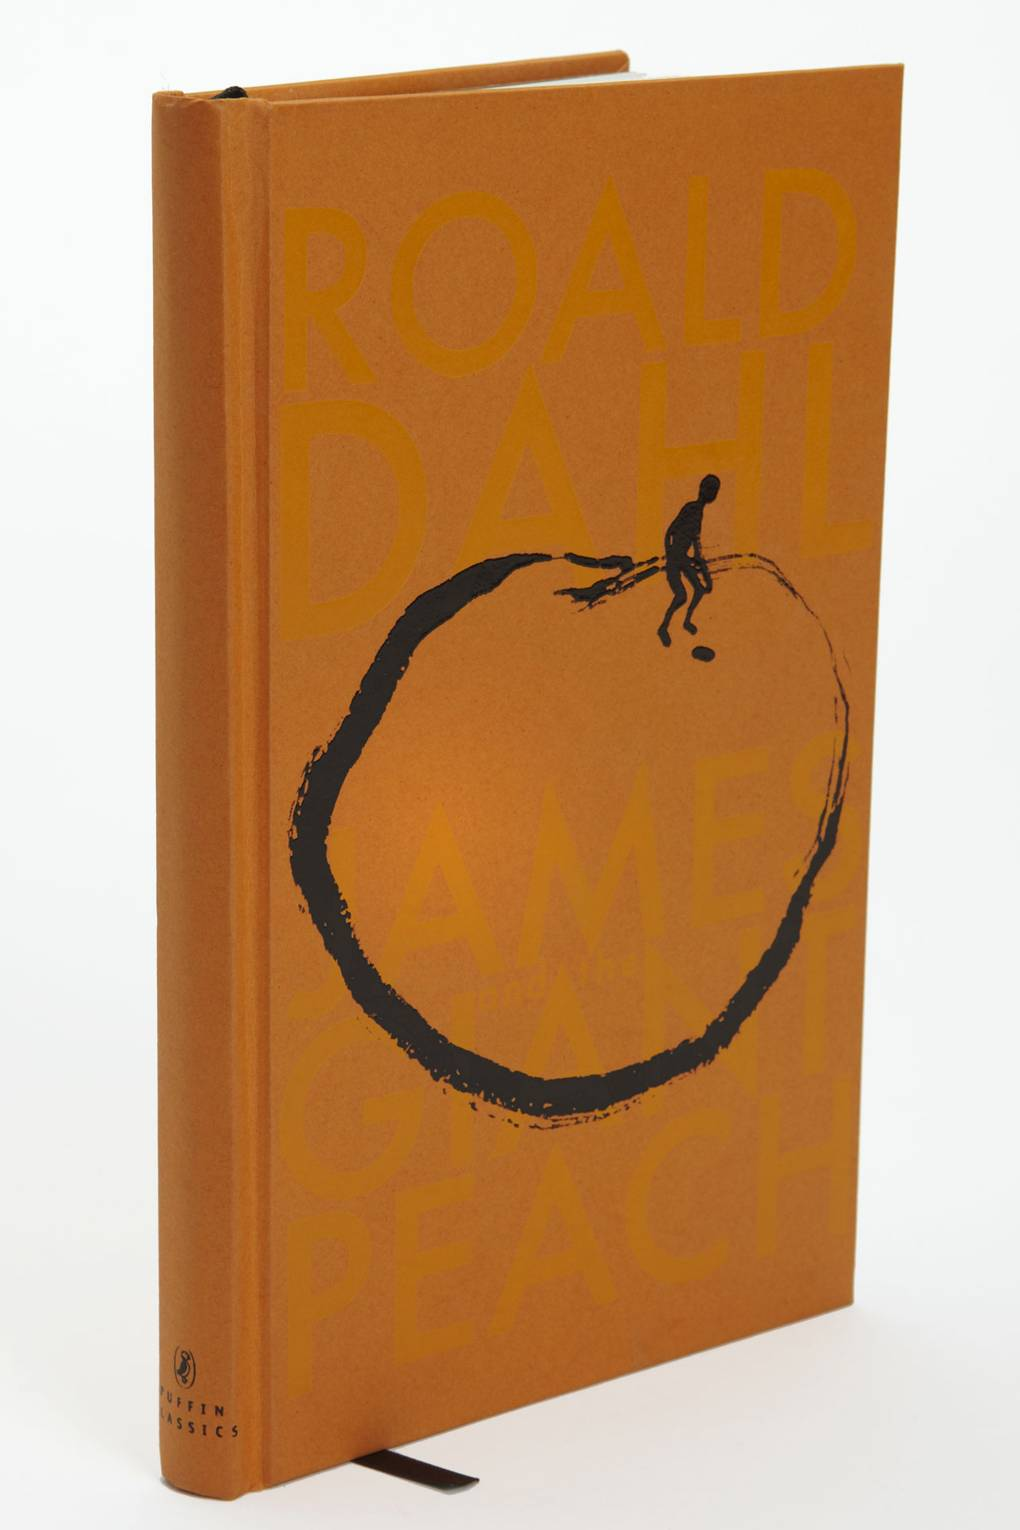 James and the Giant Peach designed by Antony Gormley | Puffin 70th Anniversary Limited Edition series – beautifulbooks.info